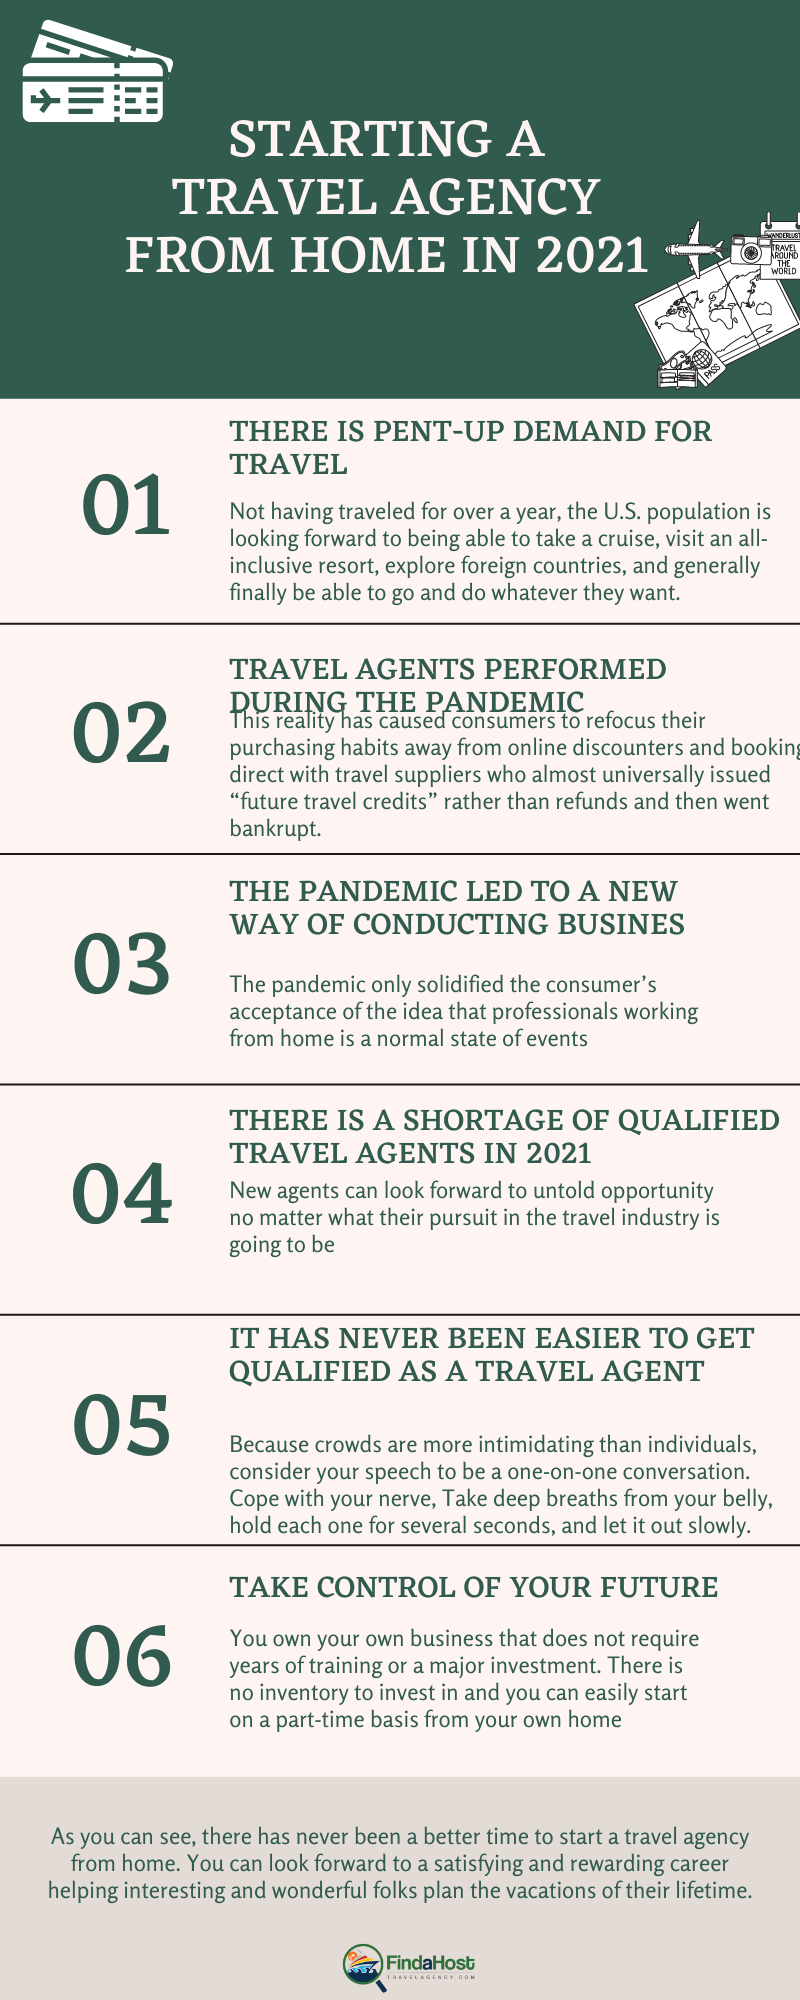 6 Steps to Start a Home Based Travel Agency from Home in 2021